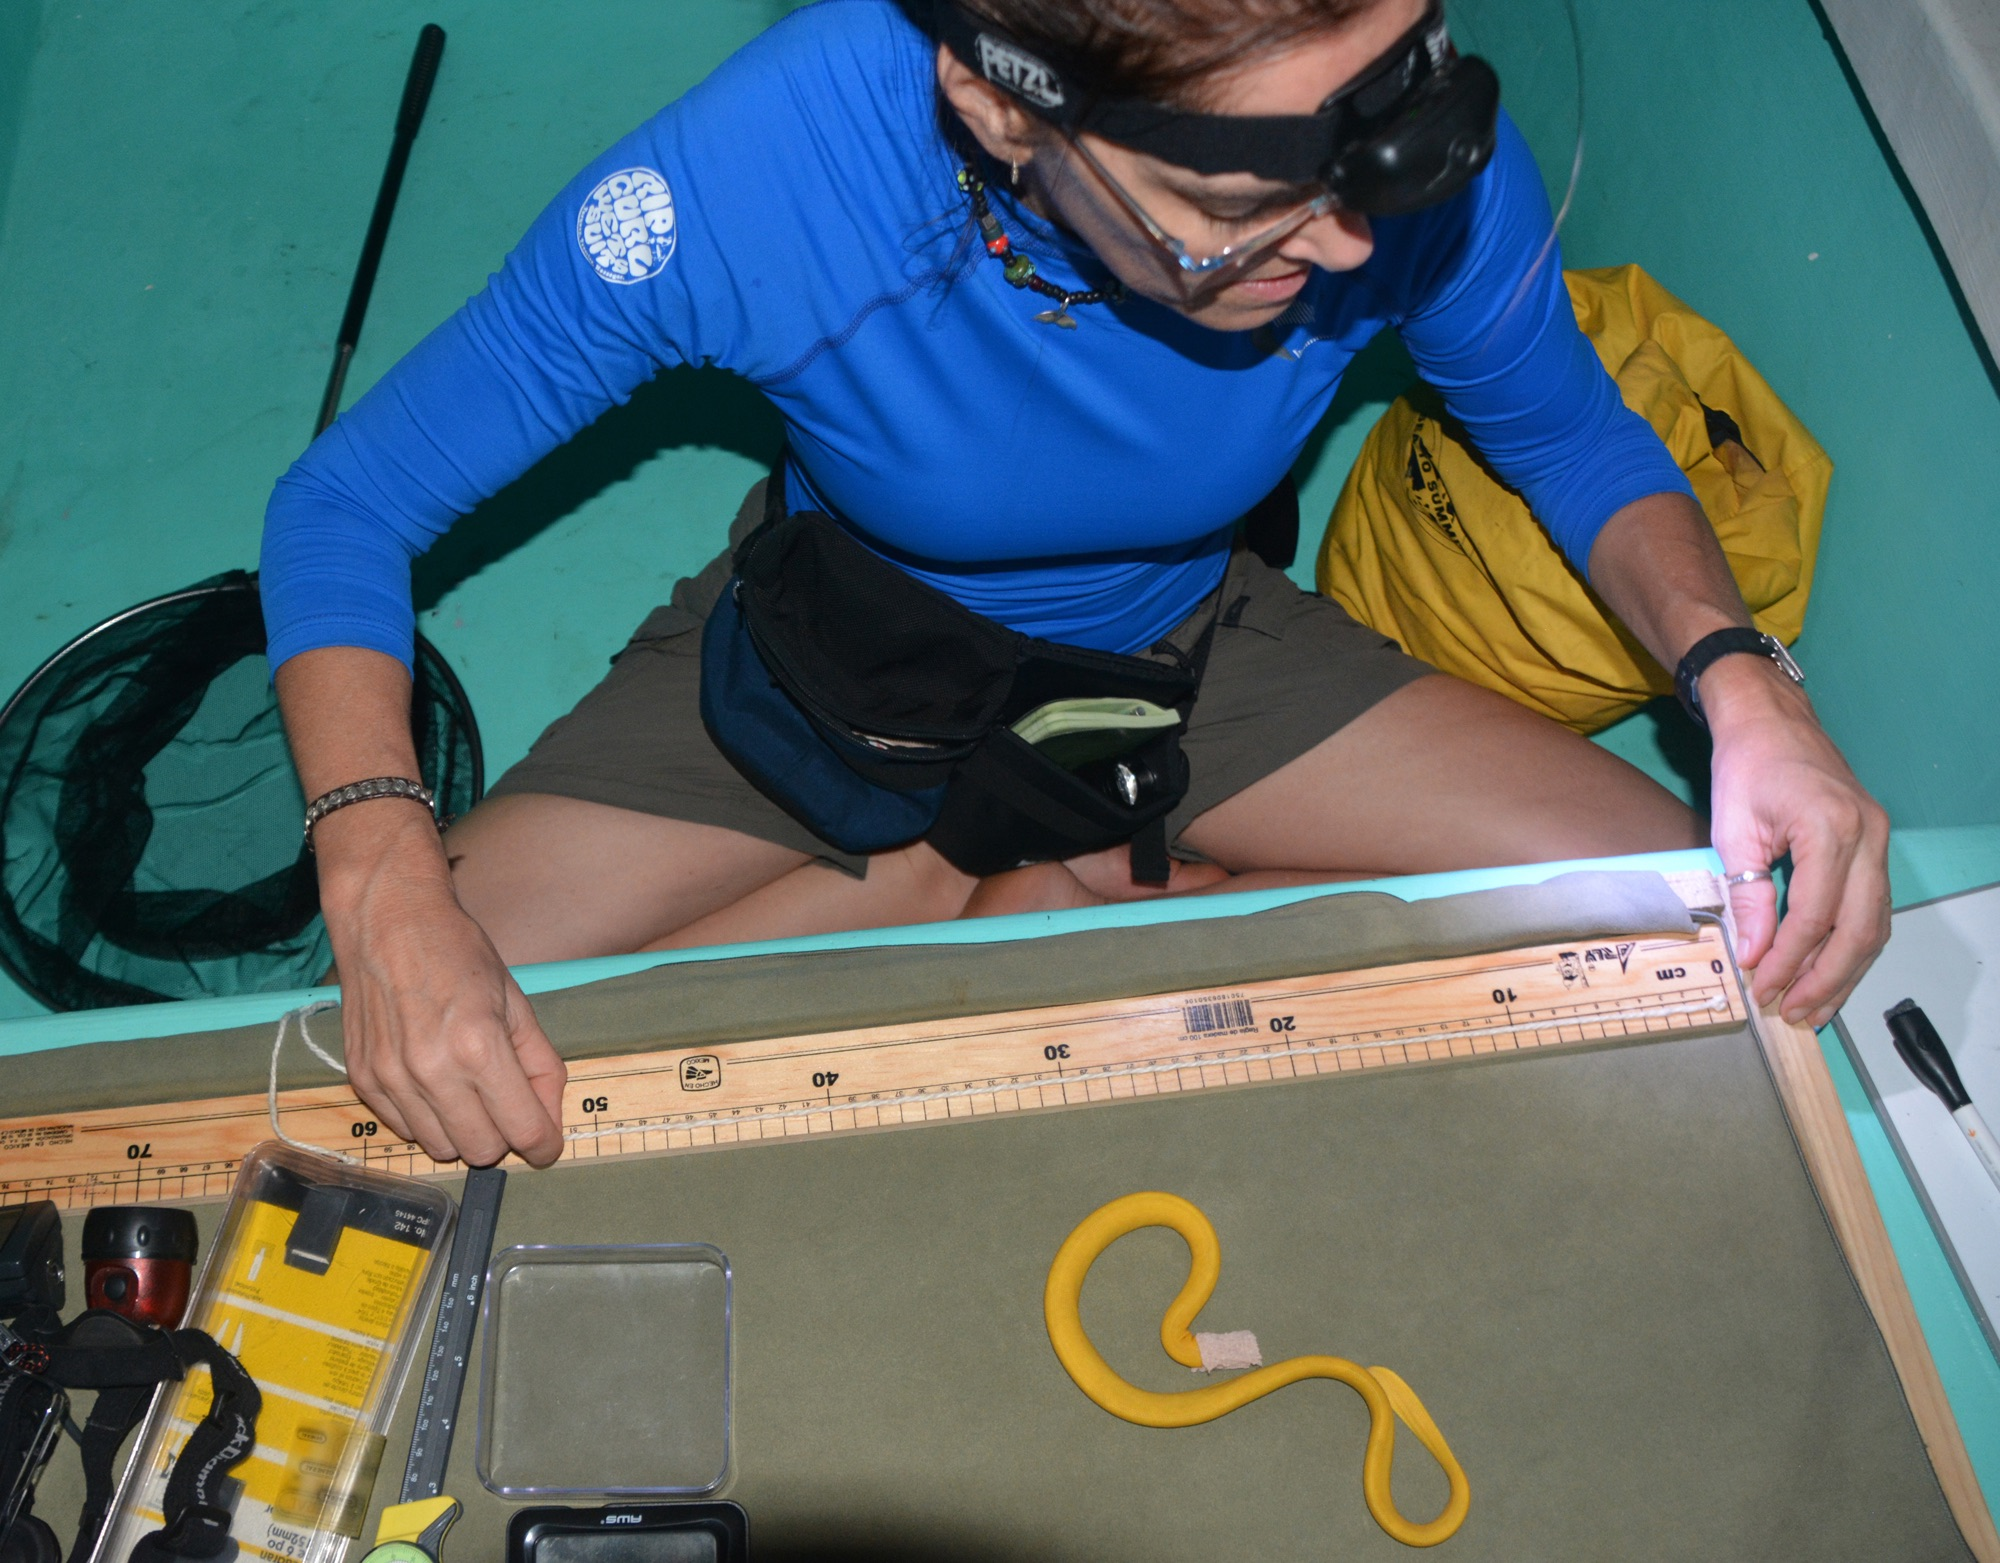 Brooke Bessesen measuring a yellow seasnake. Note the face mask around the snake's head to calm it down. Credit: Luis Nieto